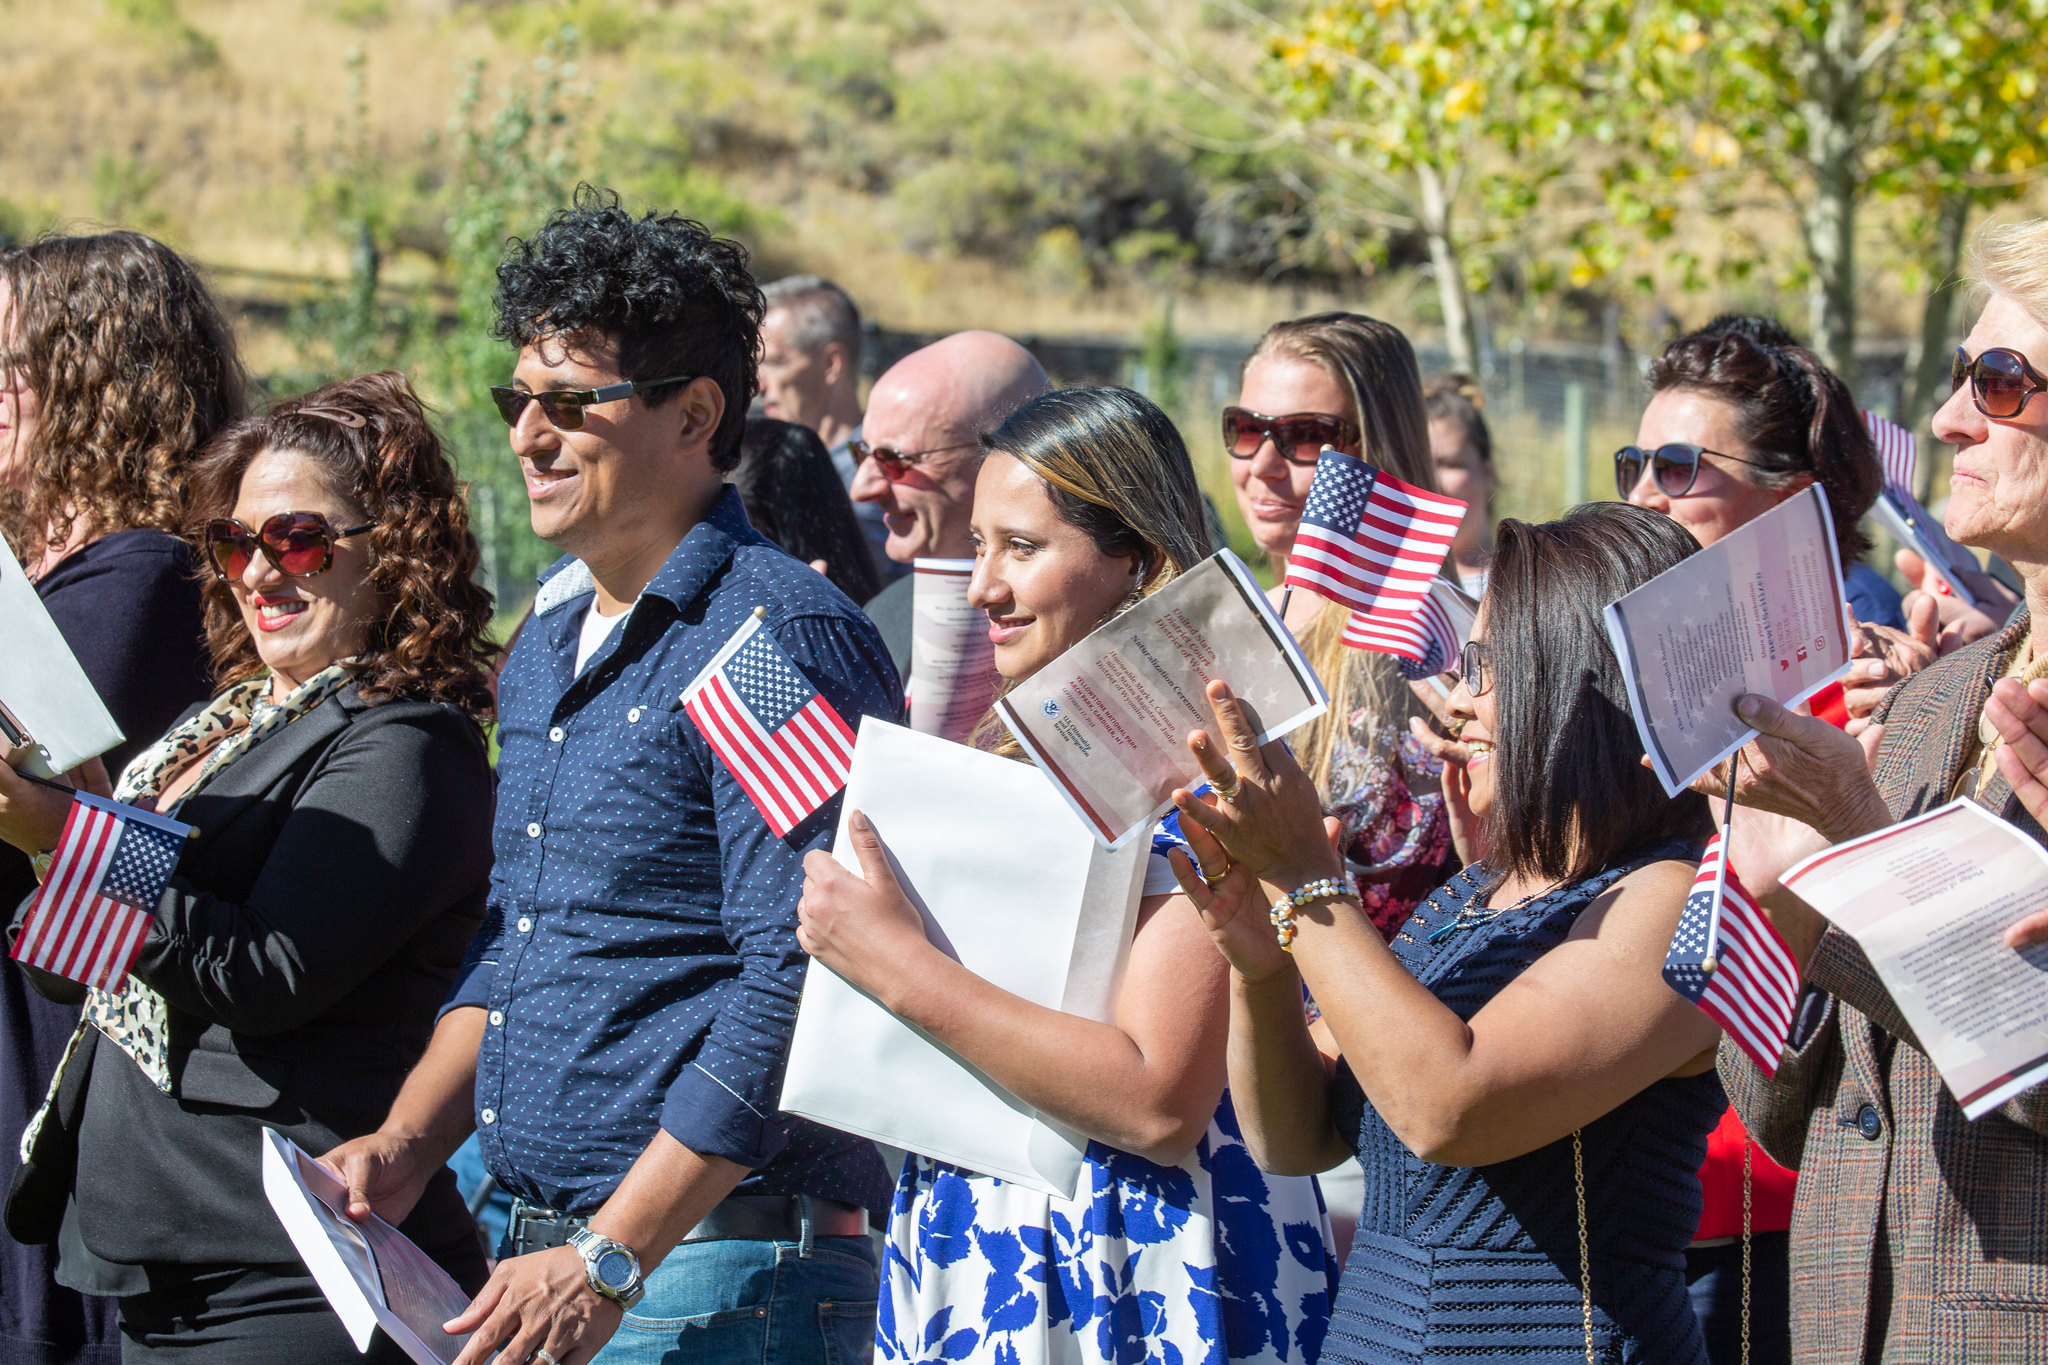 New citizens smiling and holding programs and flags